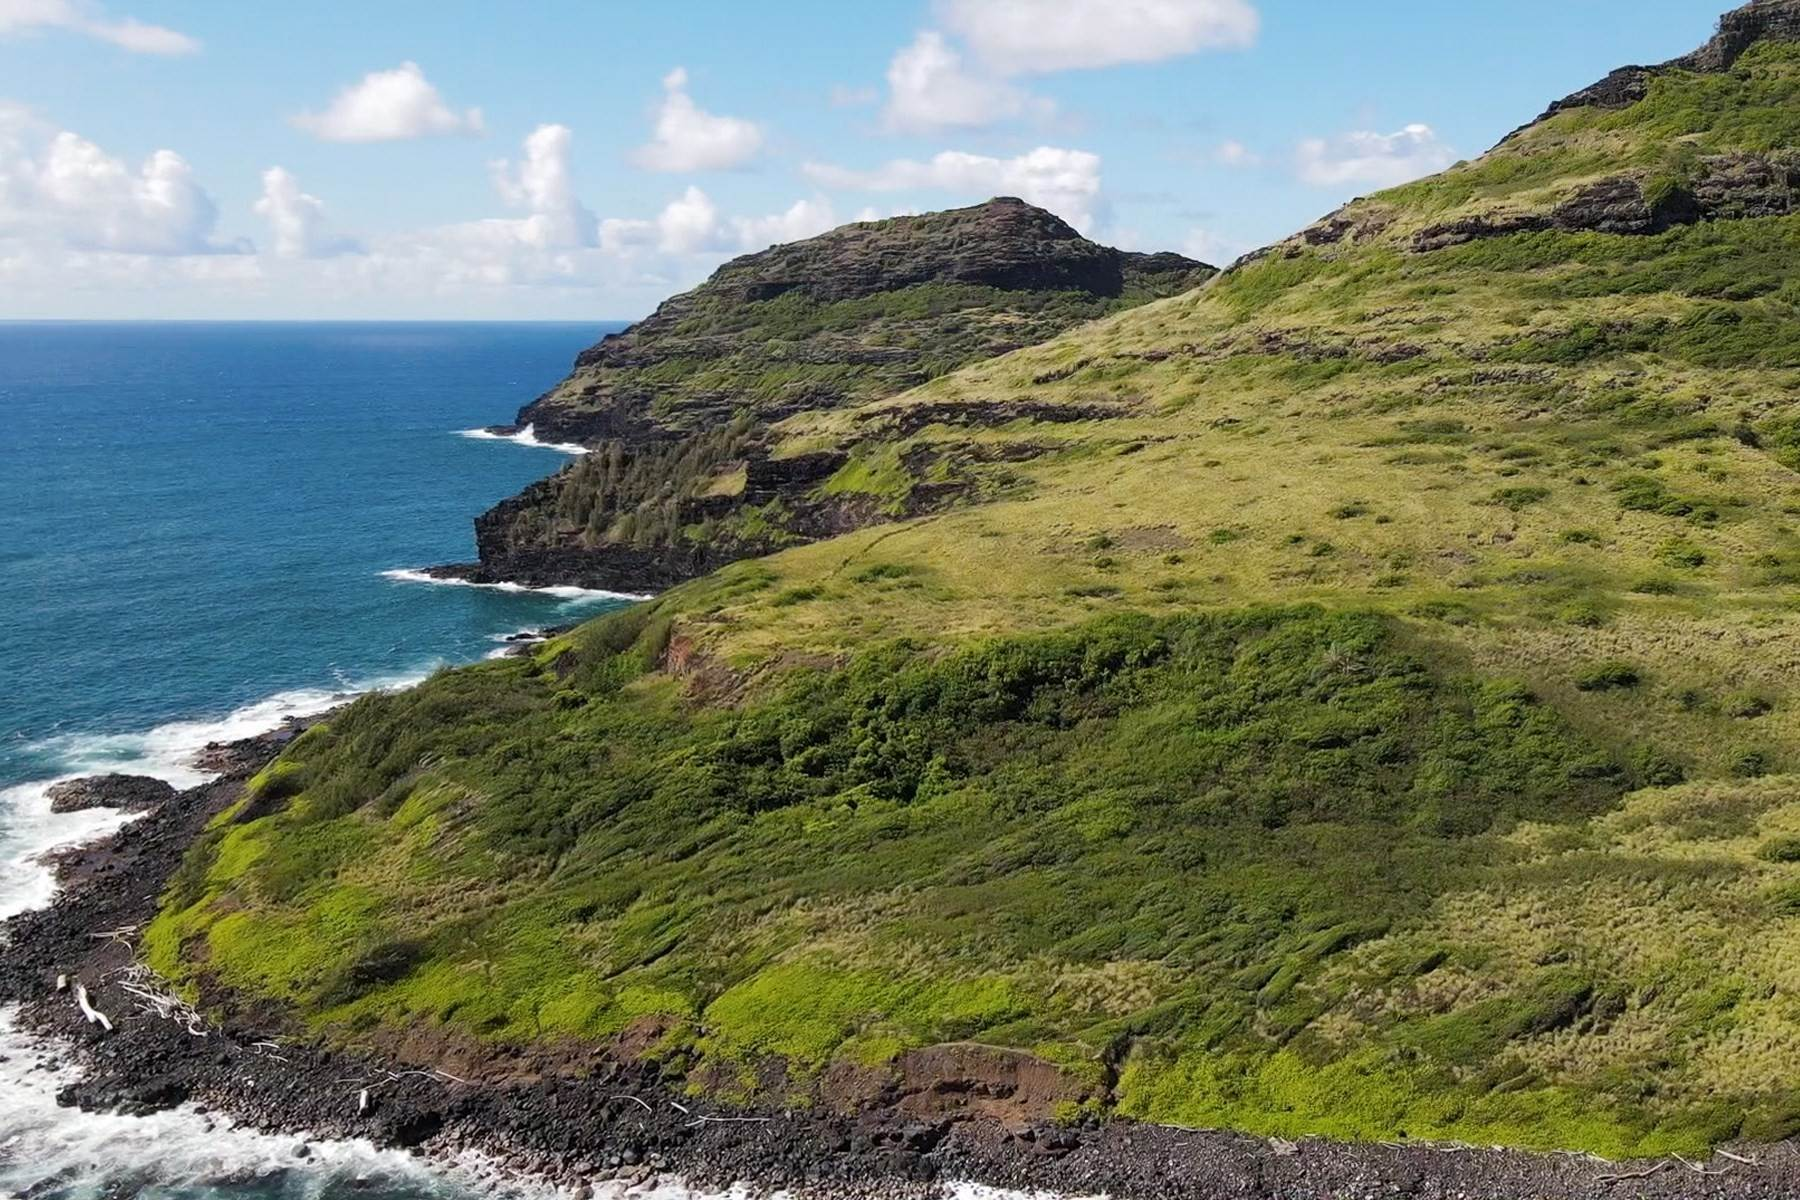 5. Land for Sale at NIUMALU Lihue, HI 96766 Niumalu Lihue, Hawaii 96766 United States